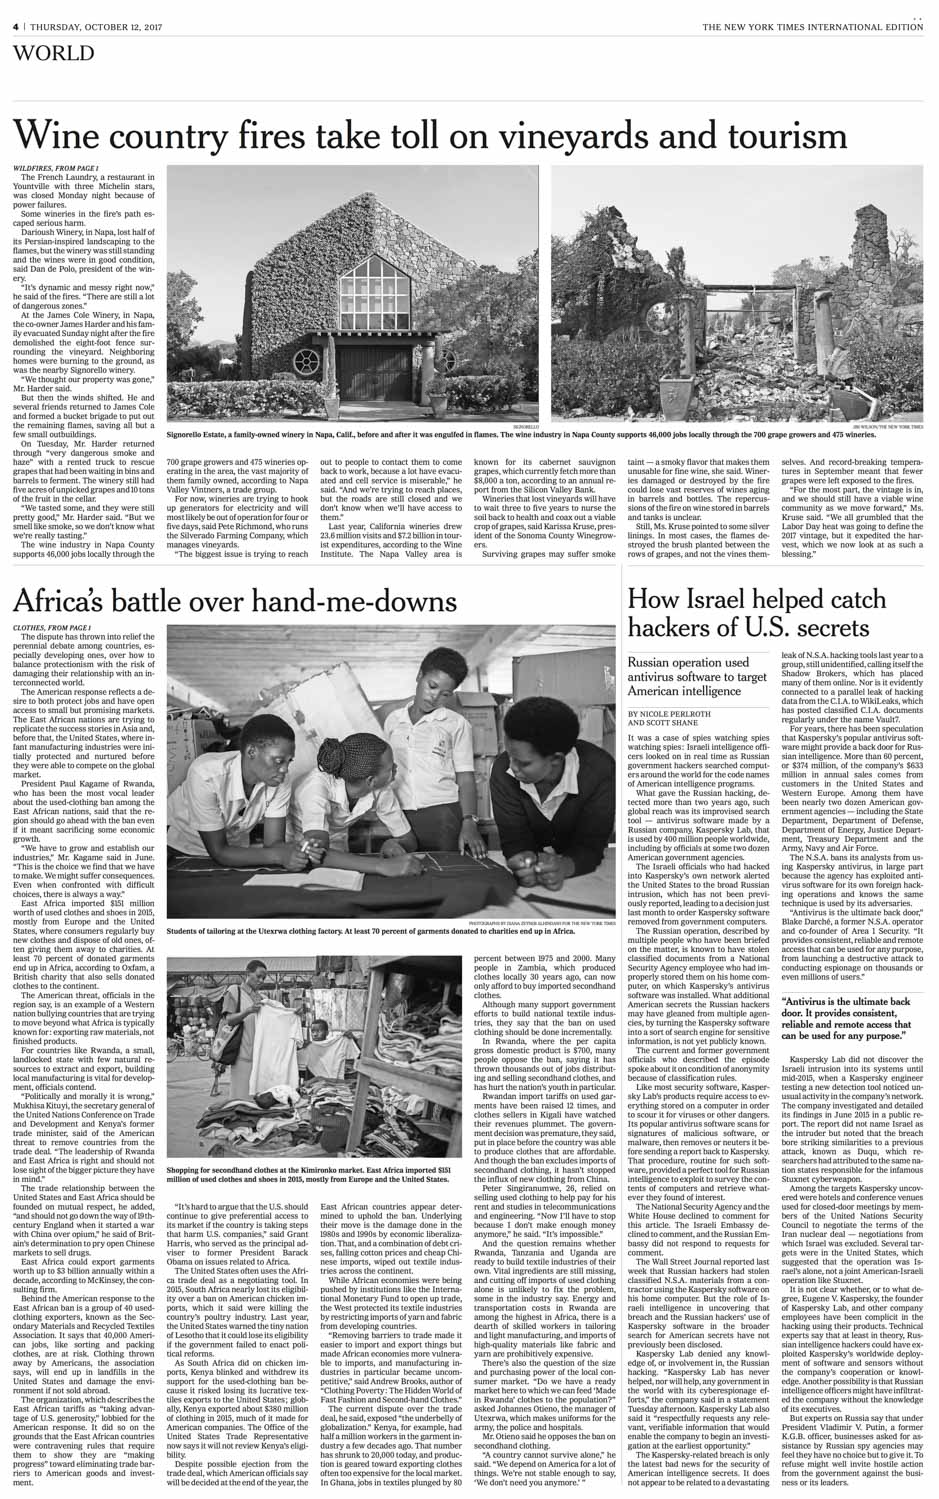 Diana Zeyneb Alhindawi_2017_10_12_International New York Times_page A4_rwanda africa clothing manufacturing agoa.jpg